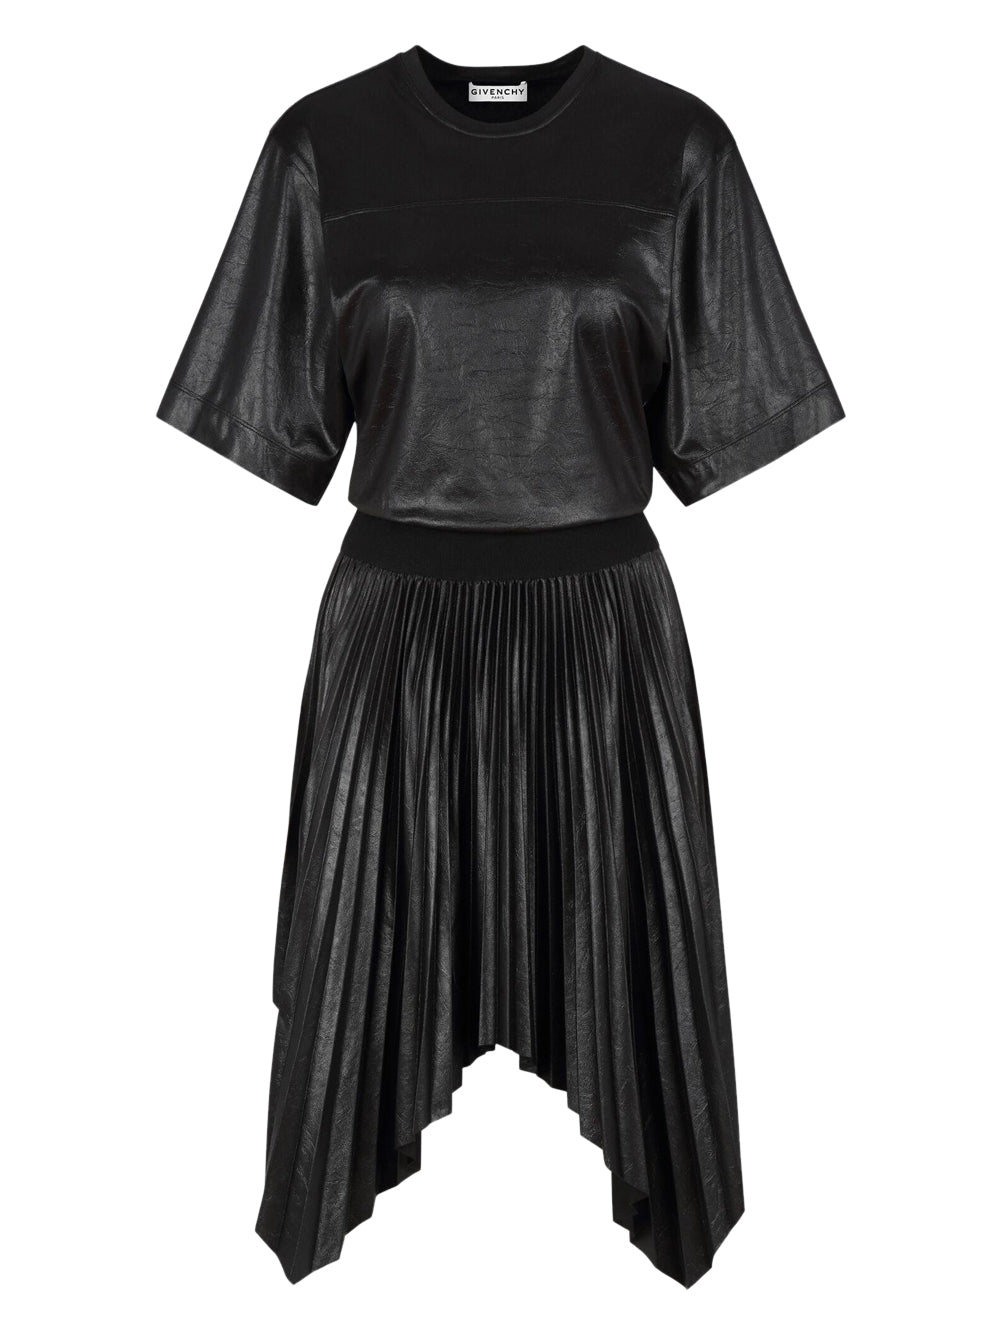 Black Pleated Varnished Dress